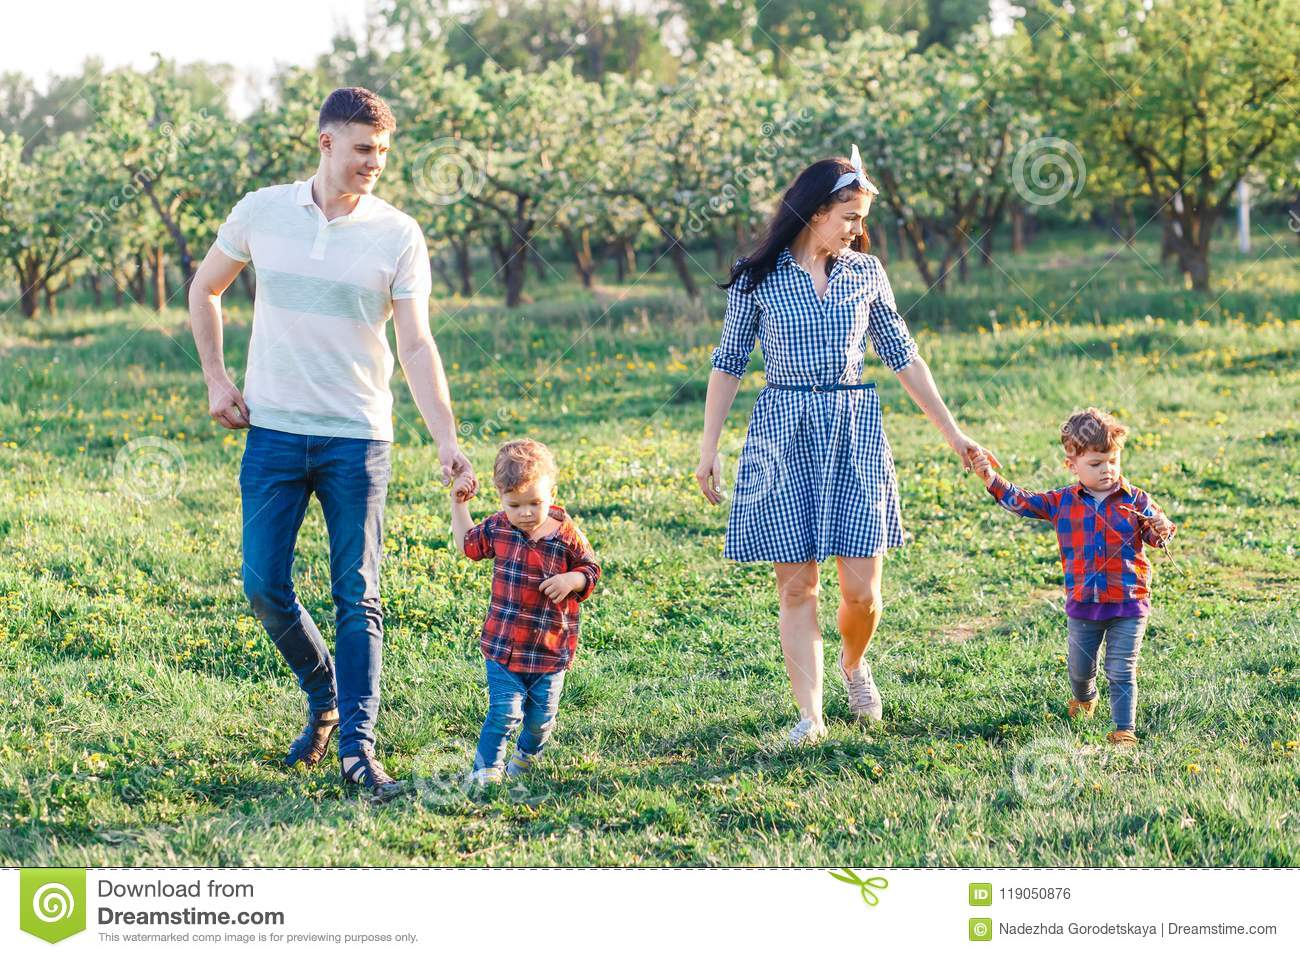 Happy young family spending time together outside in green nature. Parents playing with twins outside.